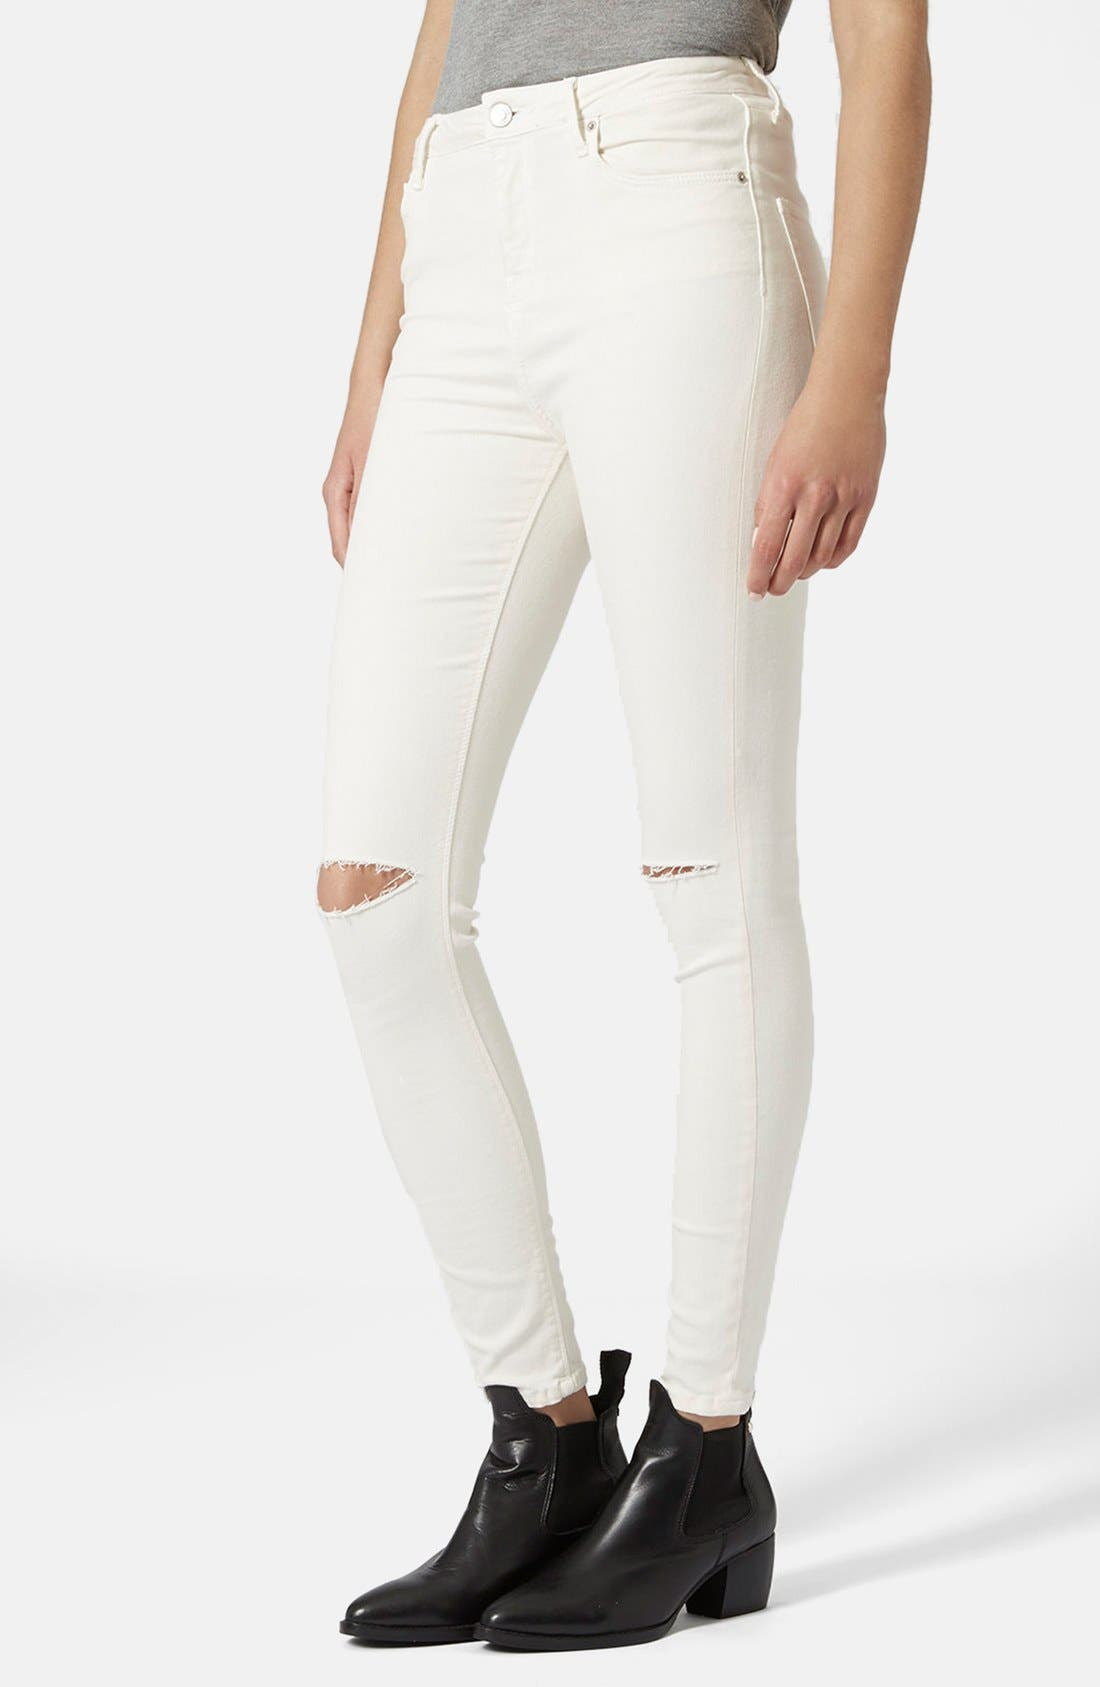 Alternate Image 1 Selected - Topshop Moto 'Jamie' Ripped Jeans (White)